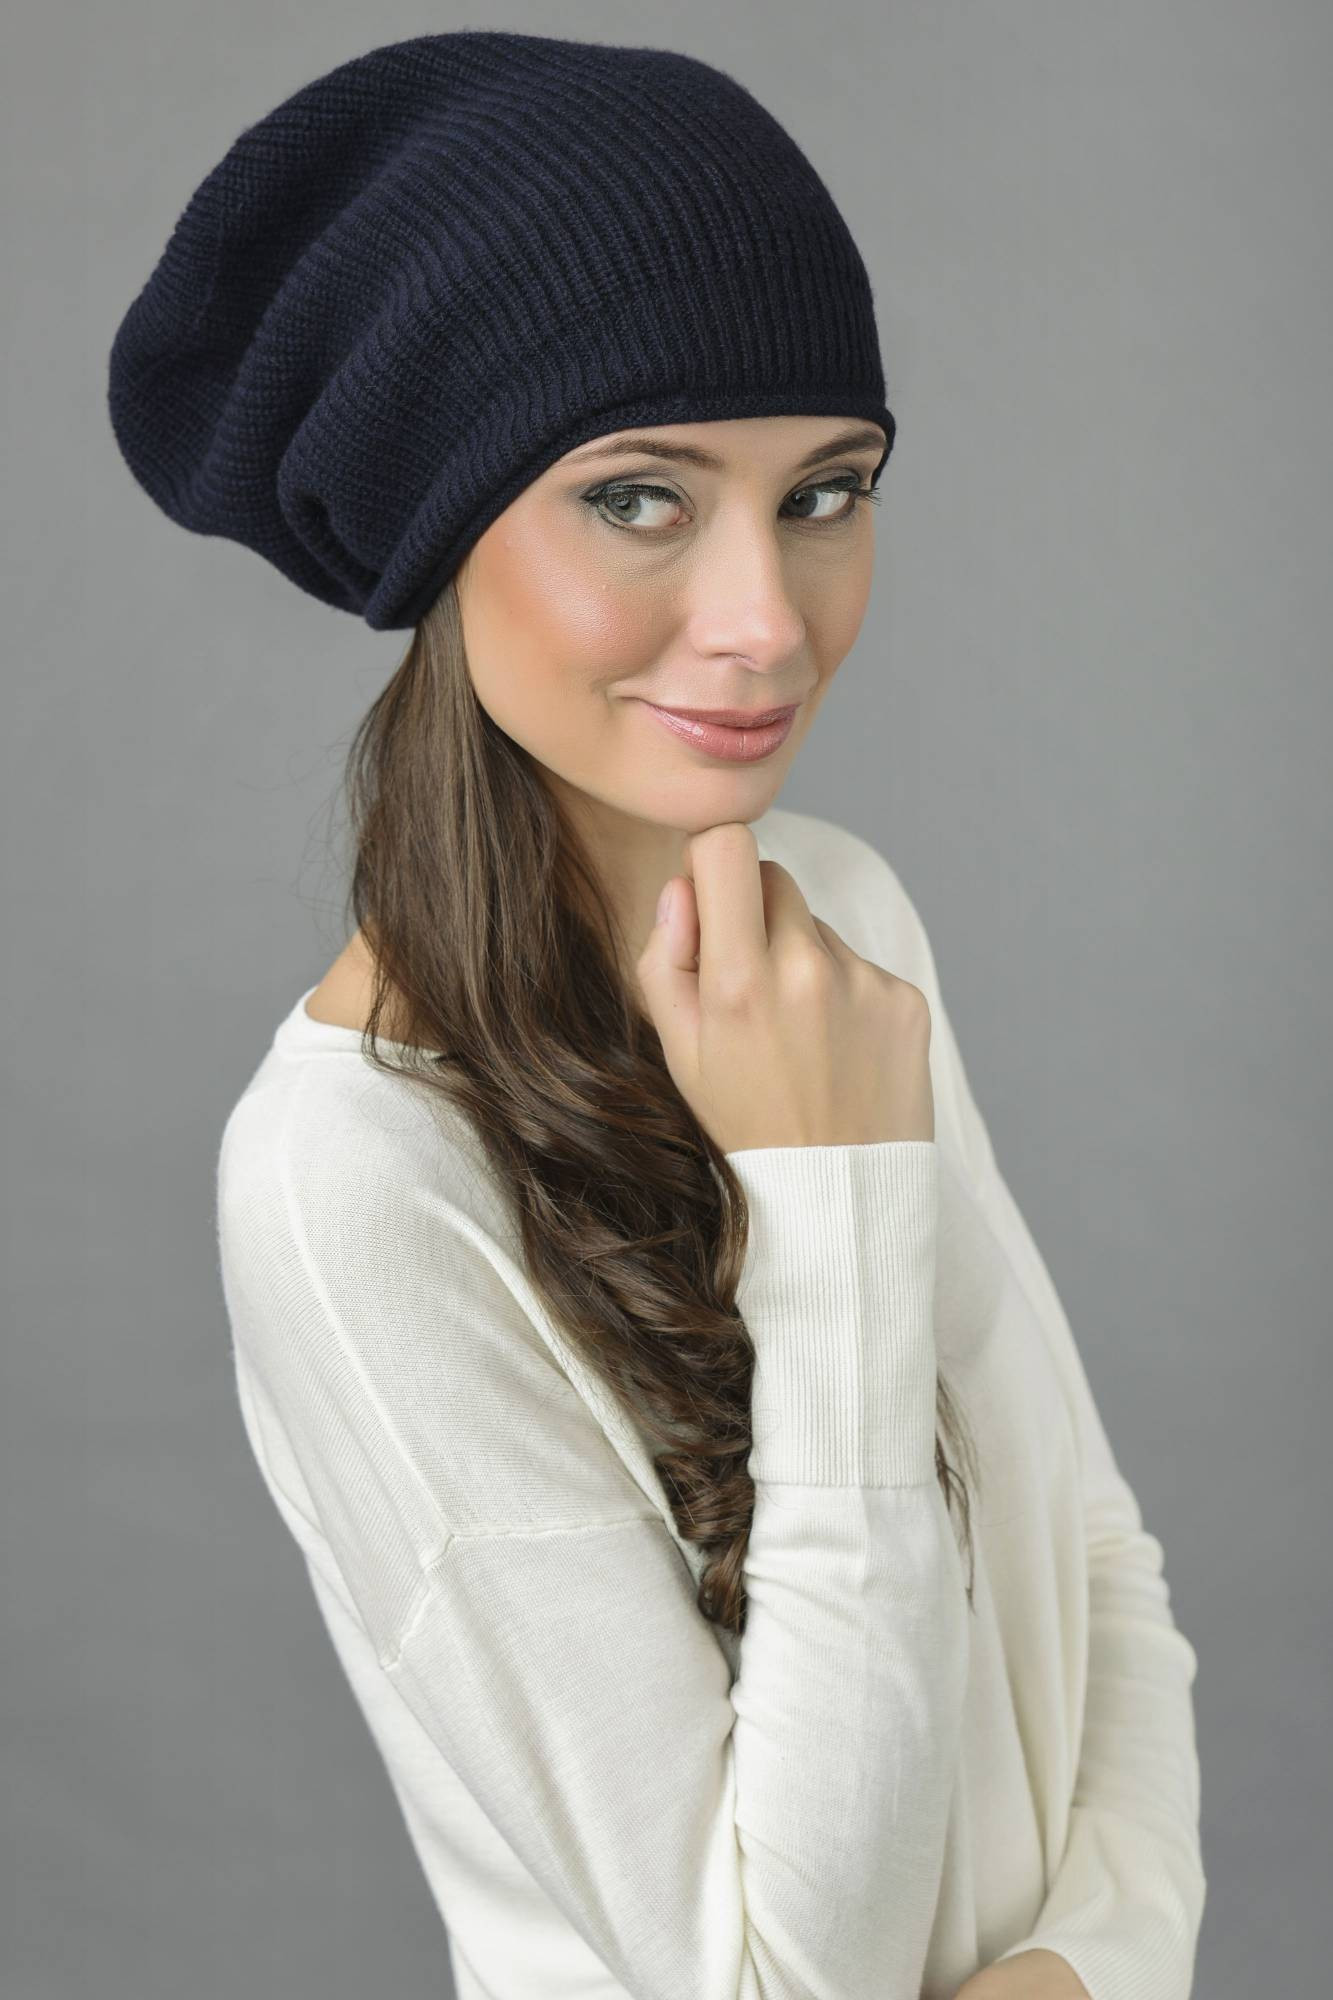 Inspirational Pure Cashmere Ribbed Knitted Slouchy Beanie Hat In Navy Knit Slouchy Beanie Of Lovely 42 Images Knit Slouchy Beanie